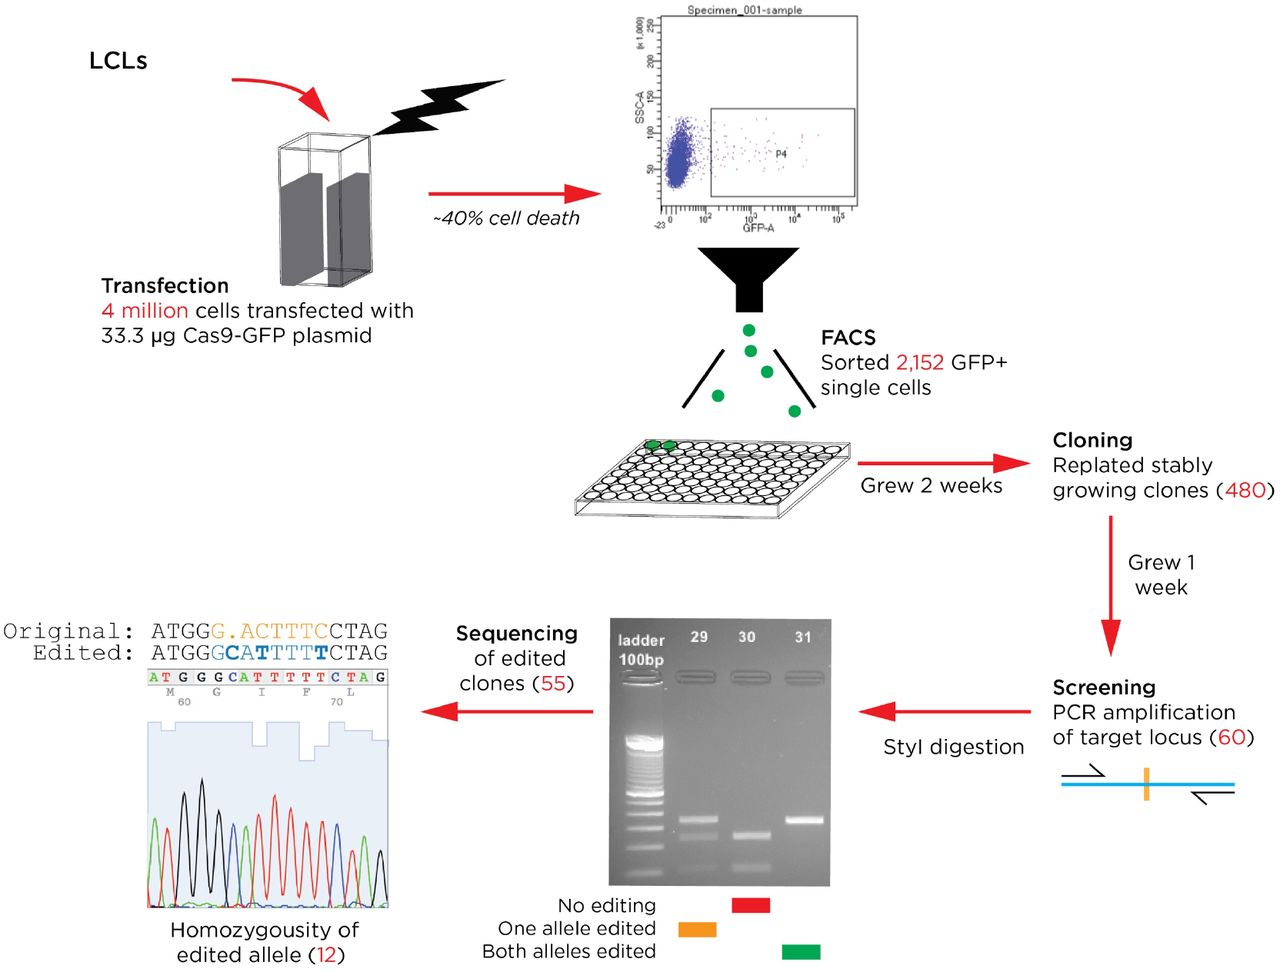 crispr/cas9-mediated genome editing of epstein-barr virus in human cells